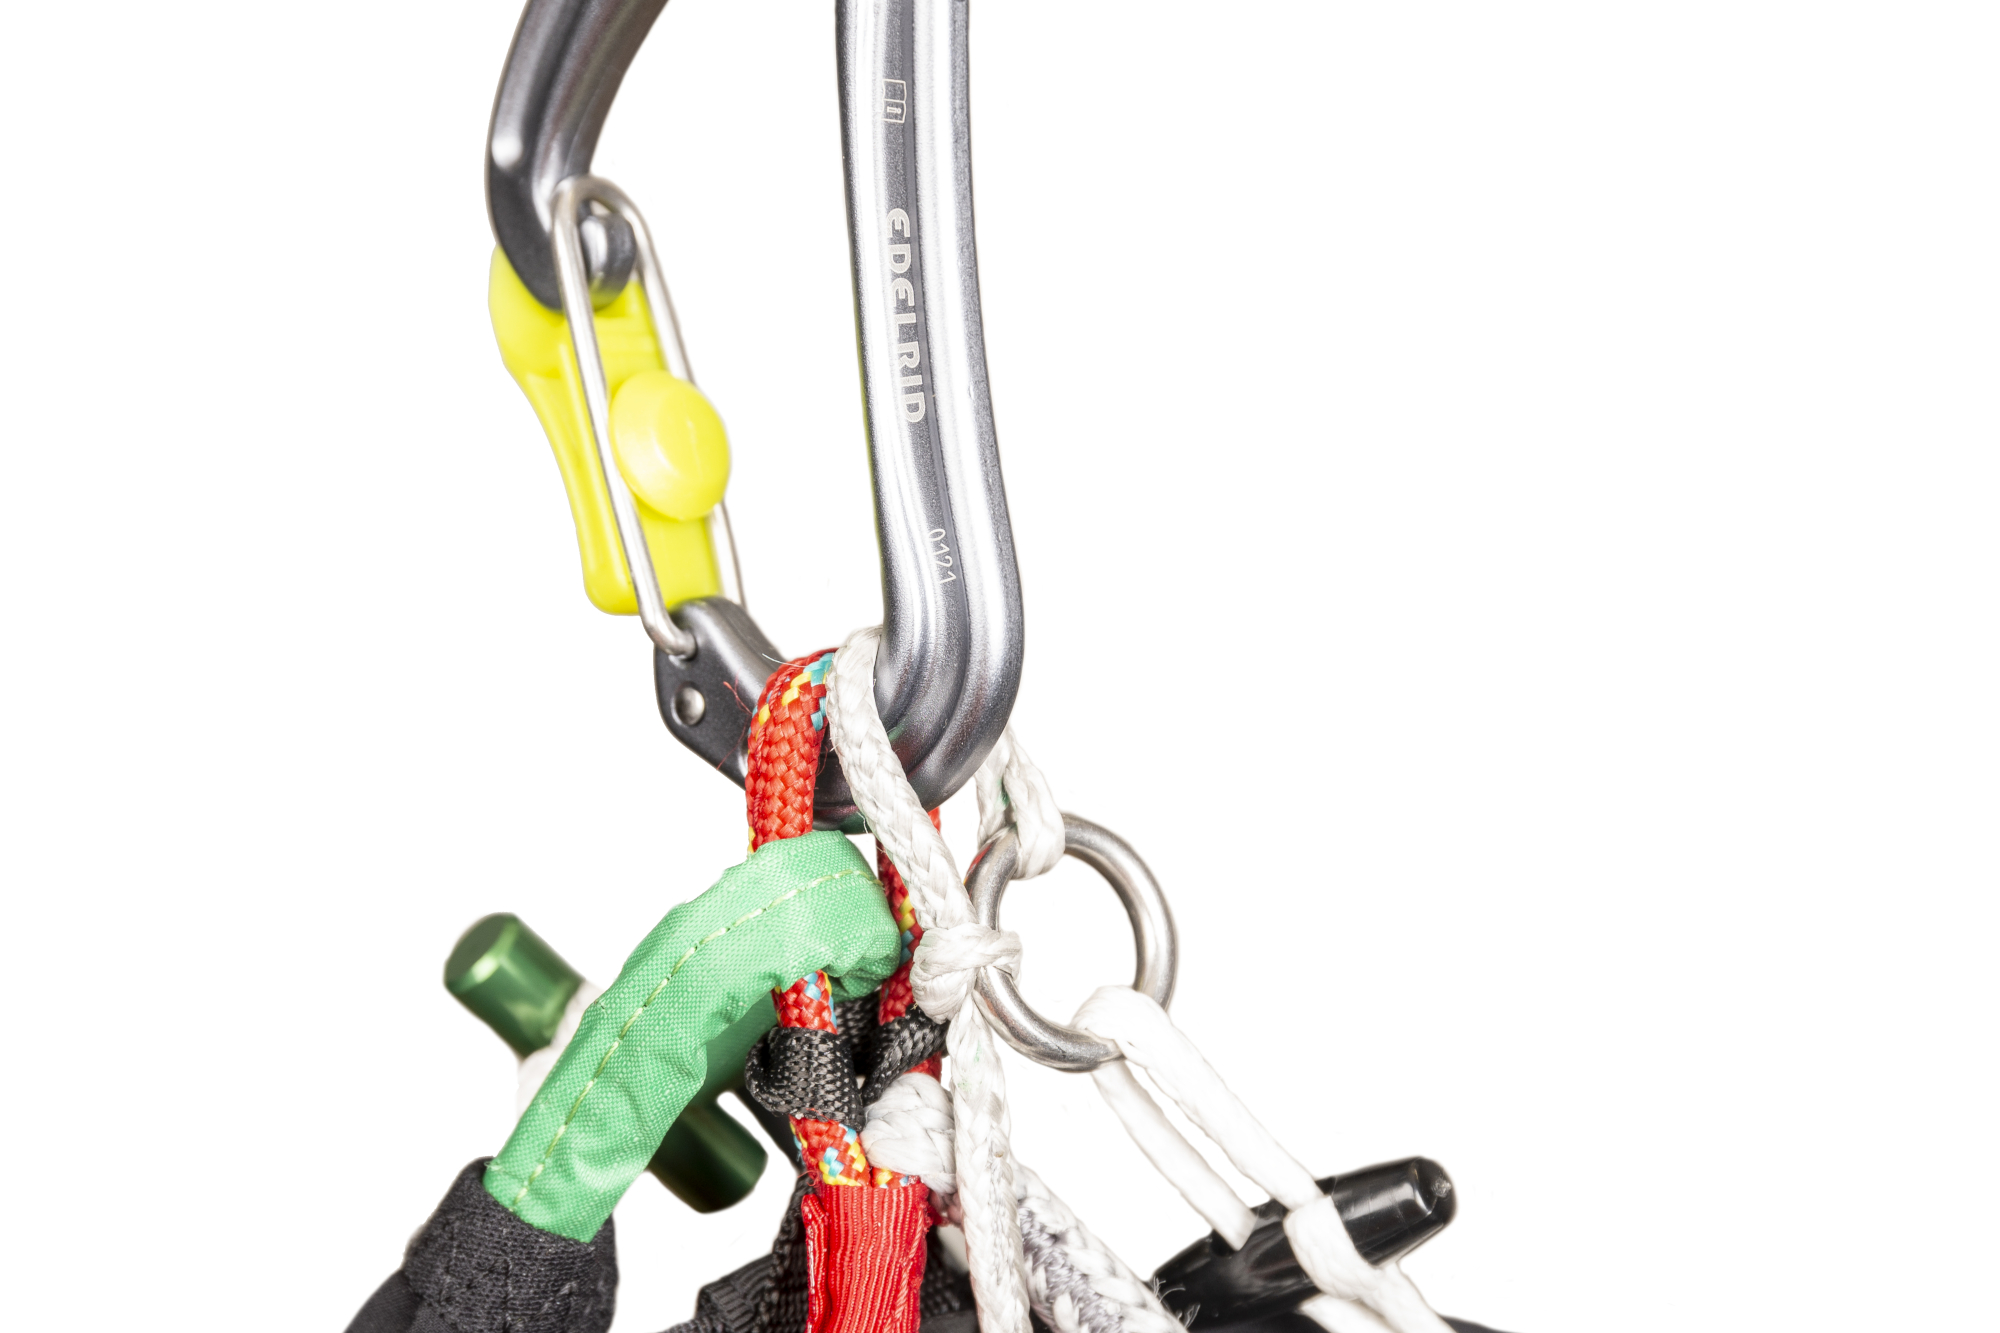 Light carabiner connection